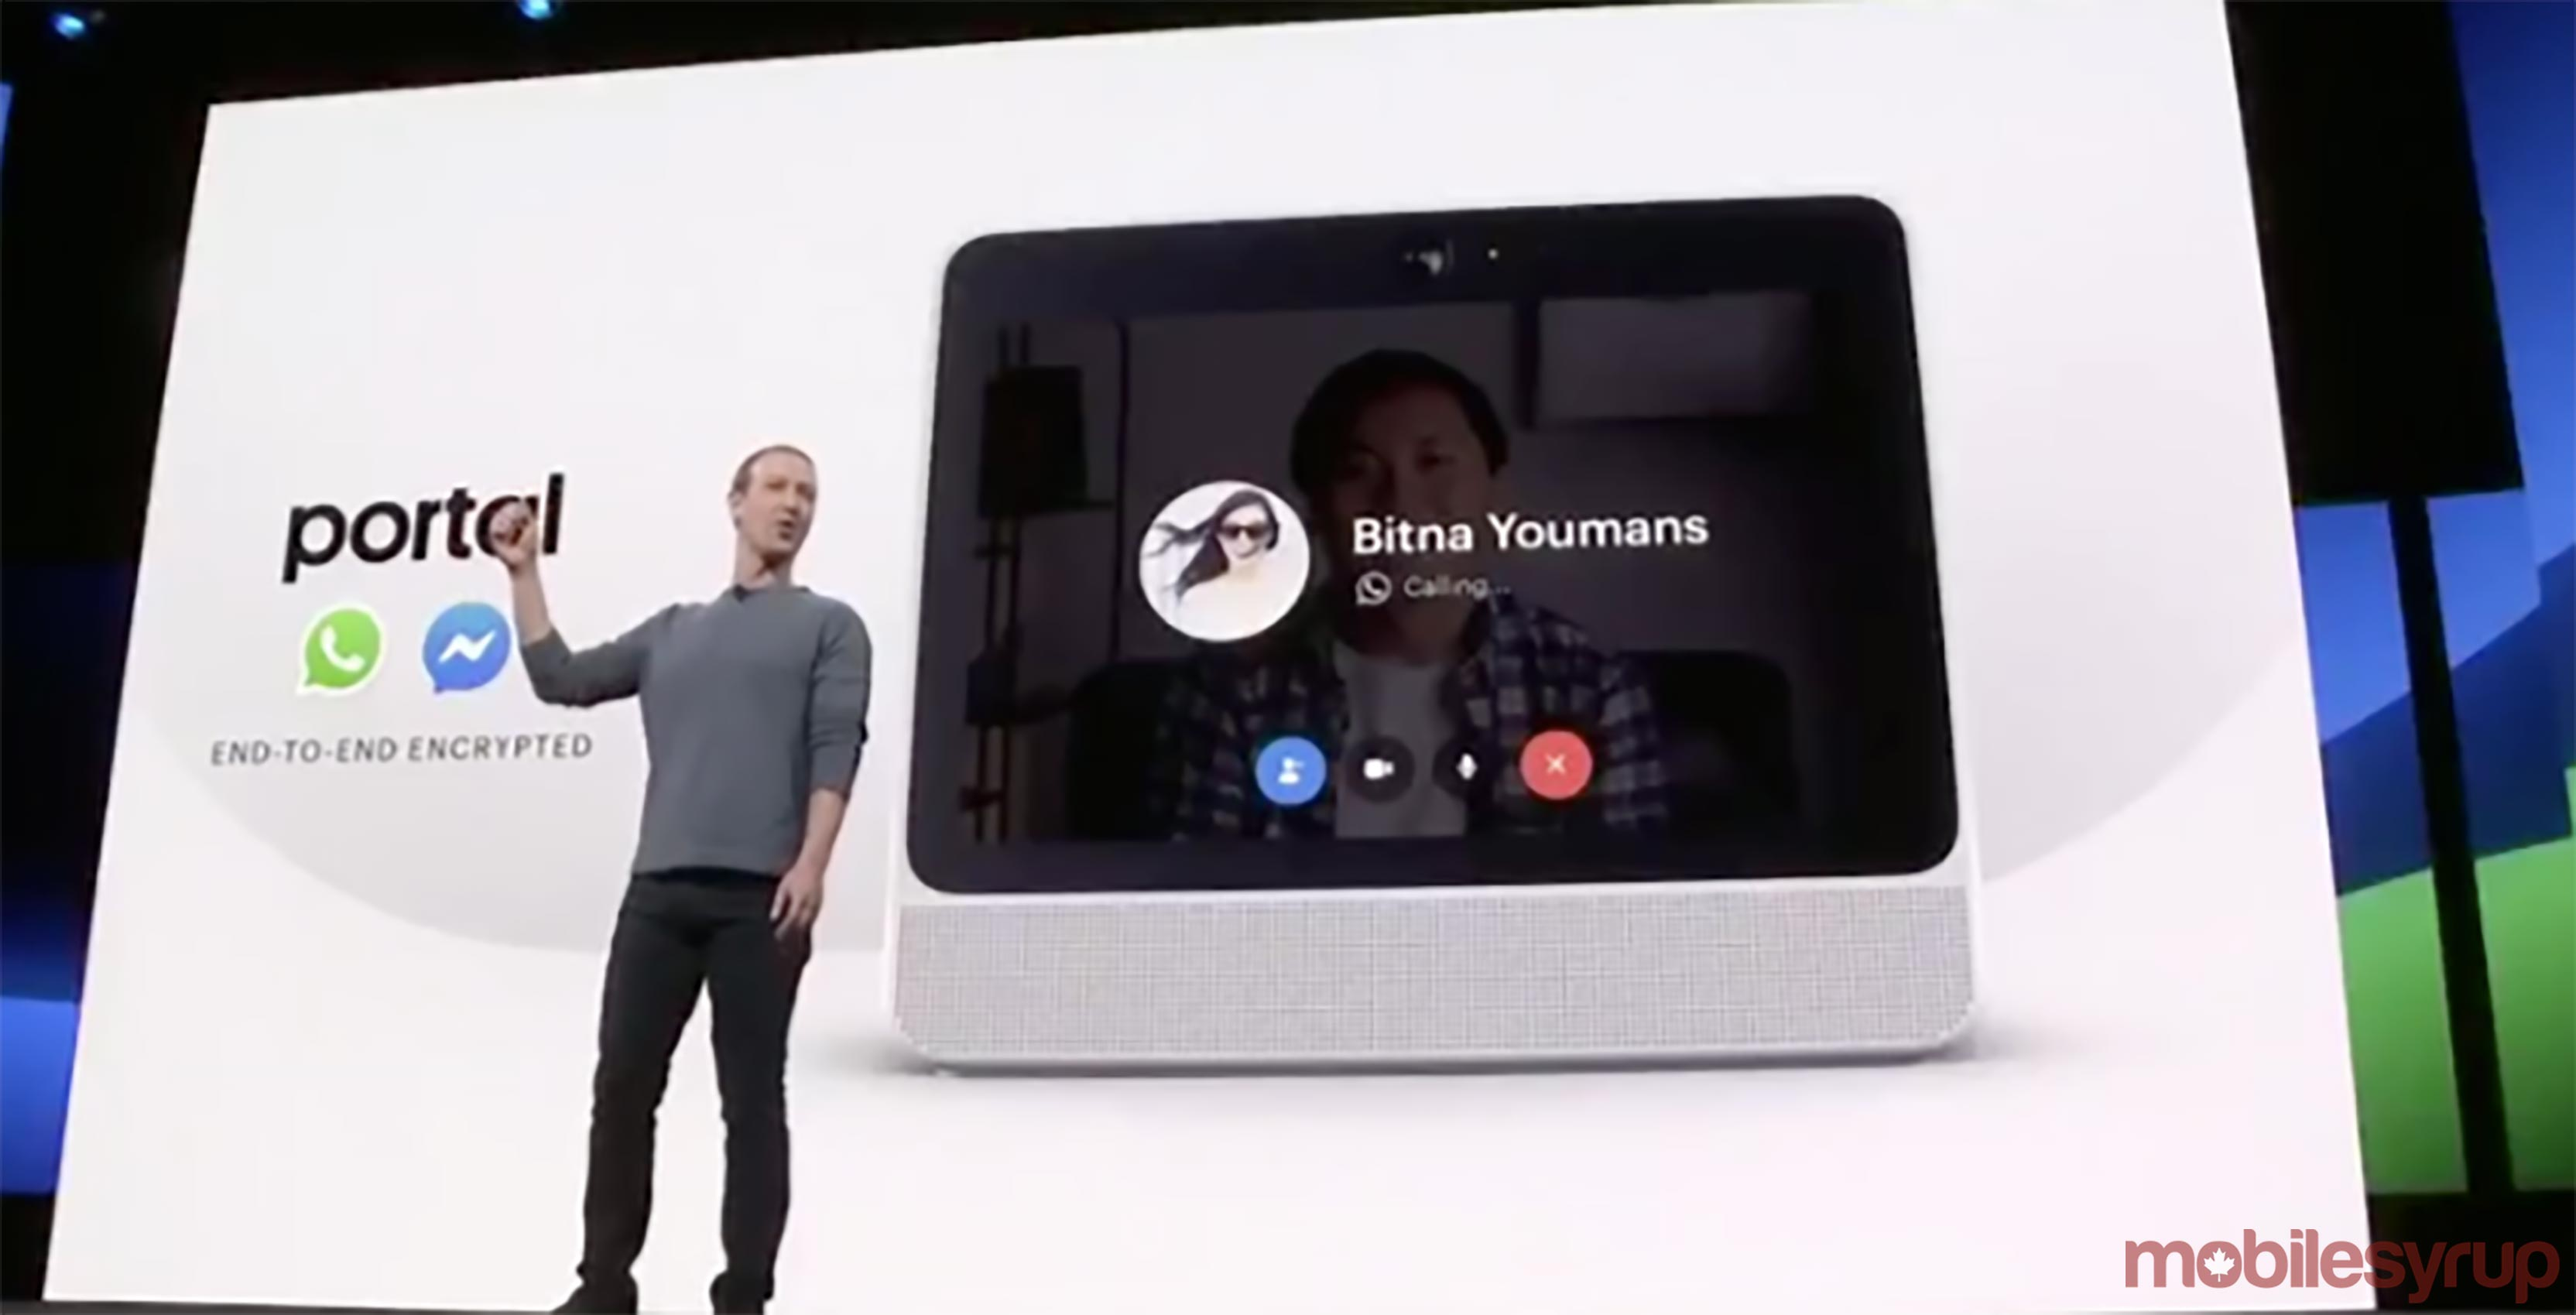 New versions of Facebook's 'Portal' devices coming this fall